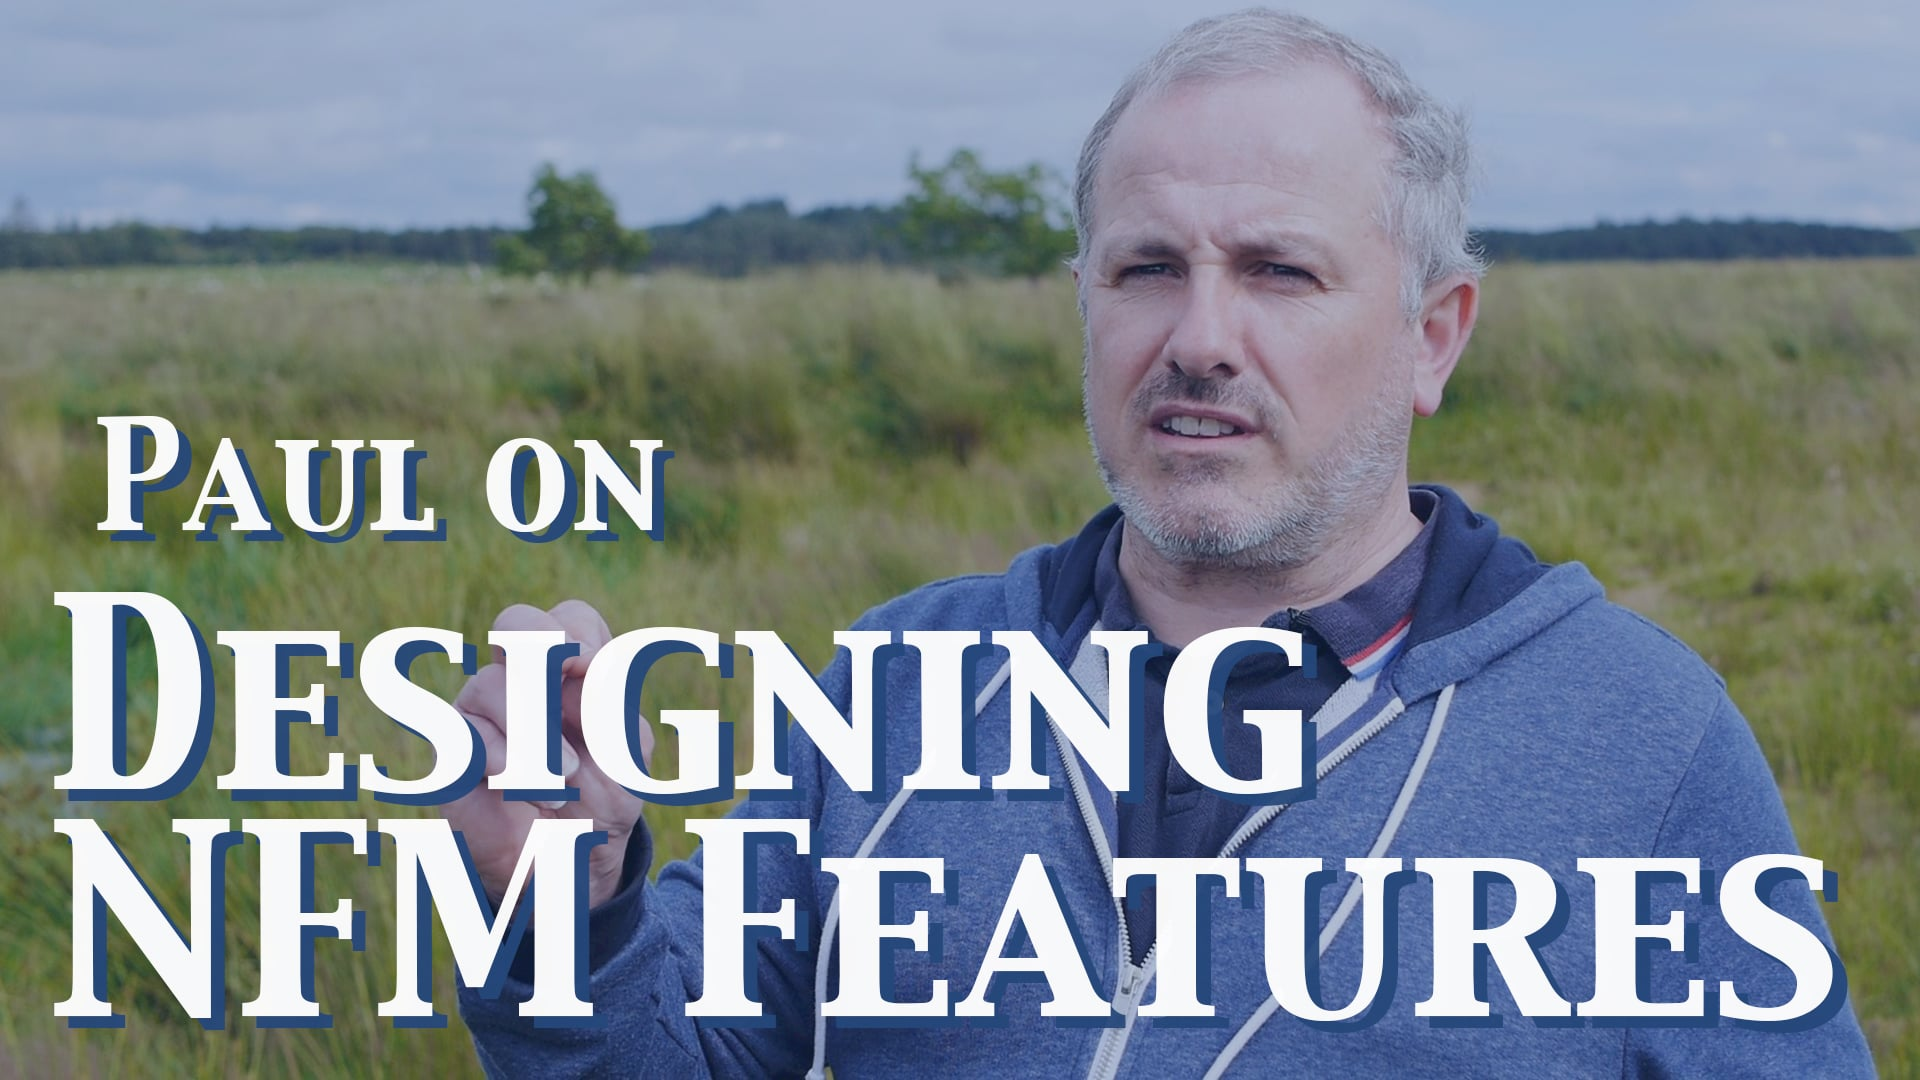 Paul on Designing Features